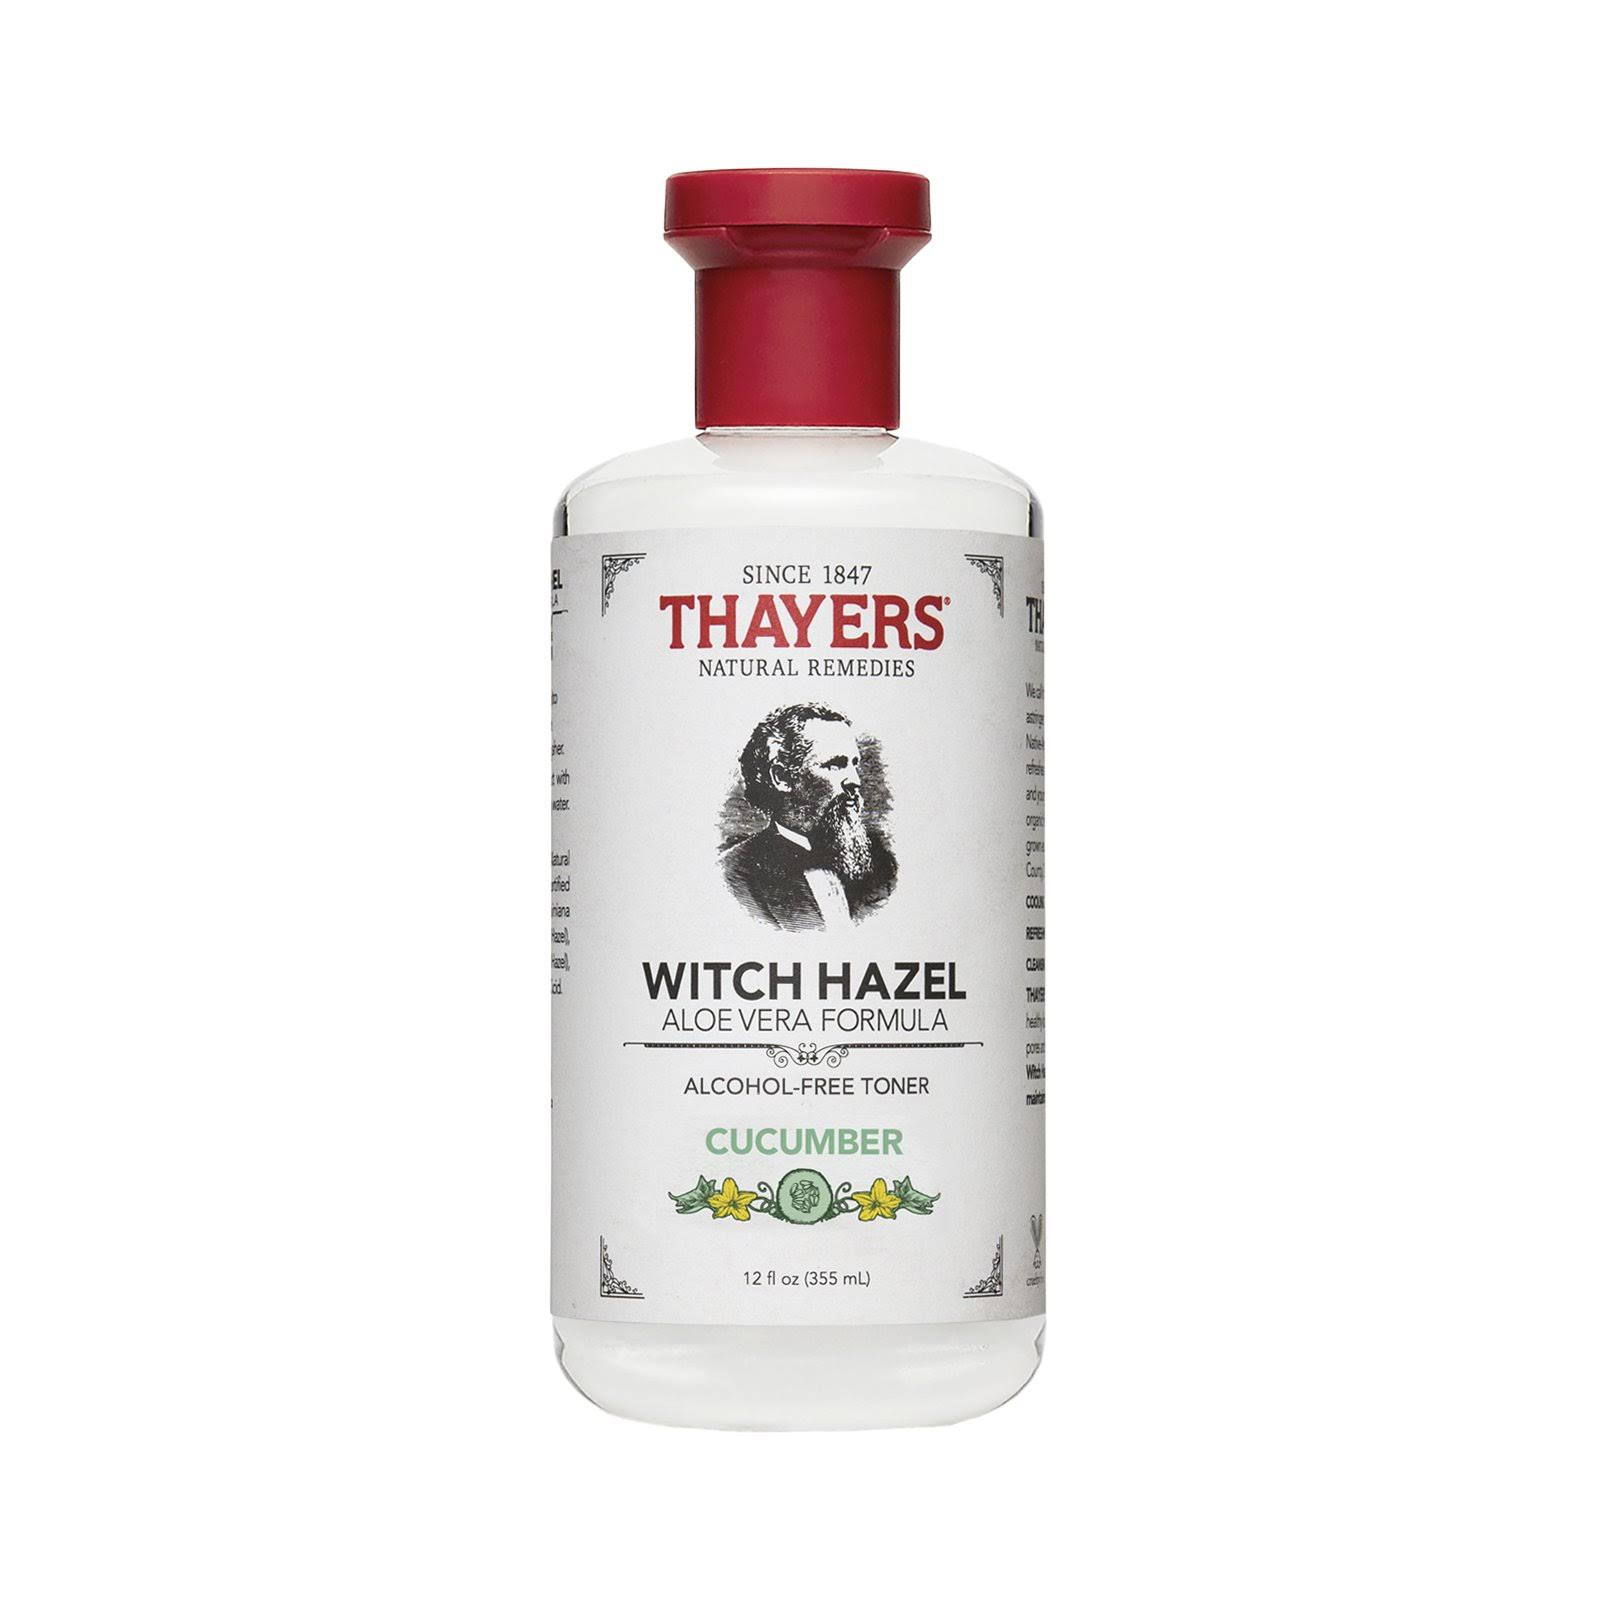 Thayers Witch Hazel Alcohol Free Toner, Cucumber - 12 oz bottle